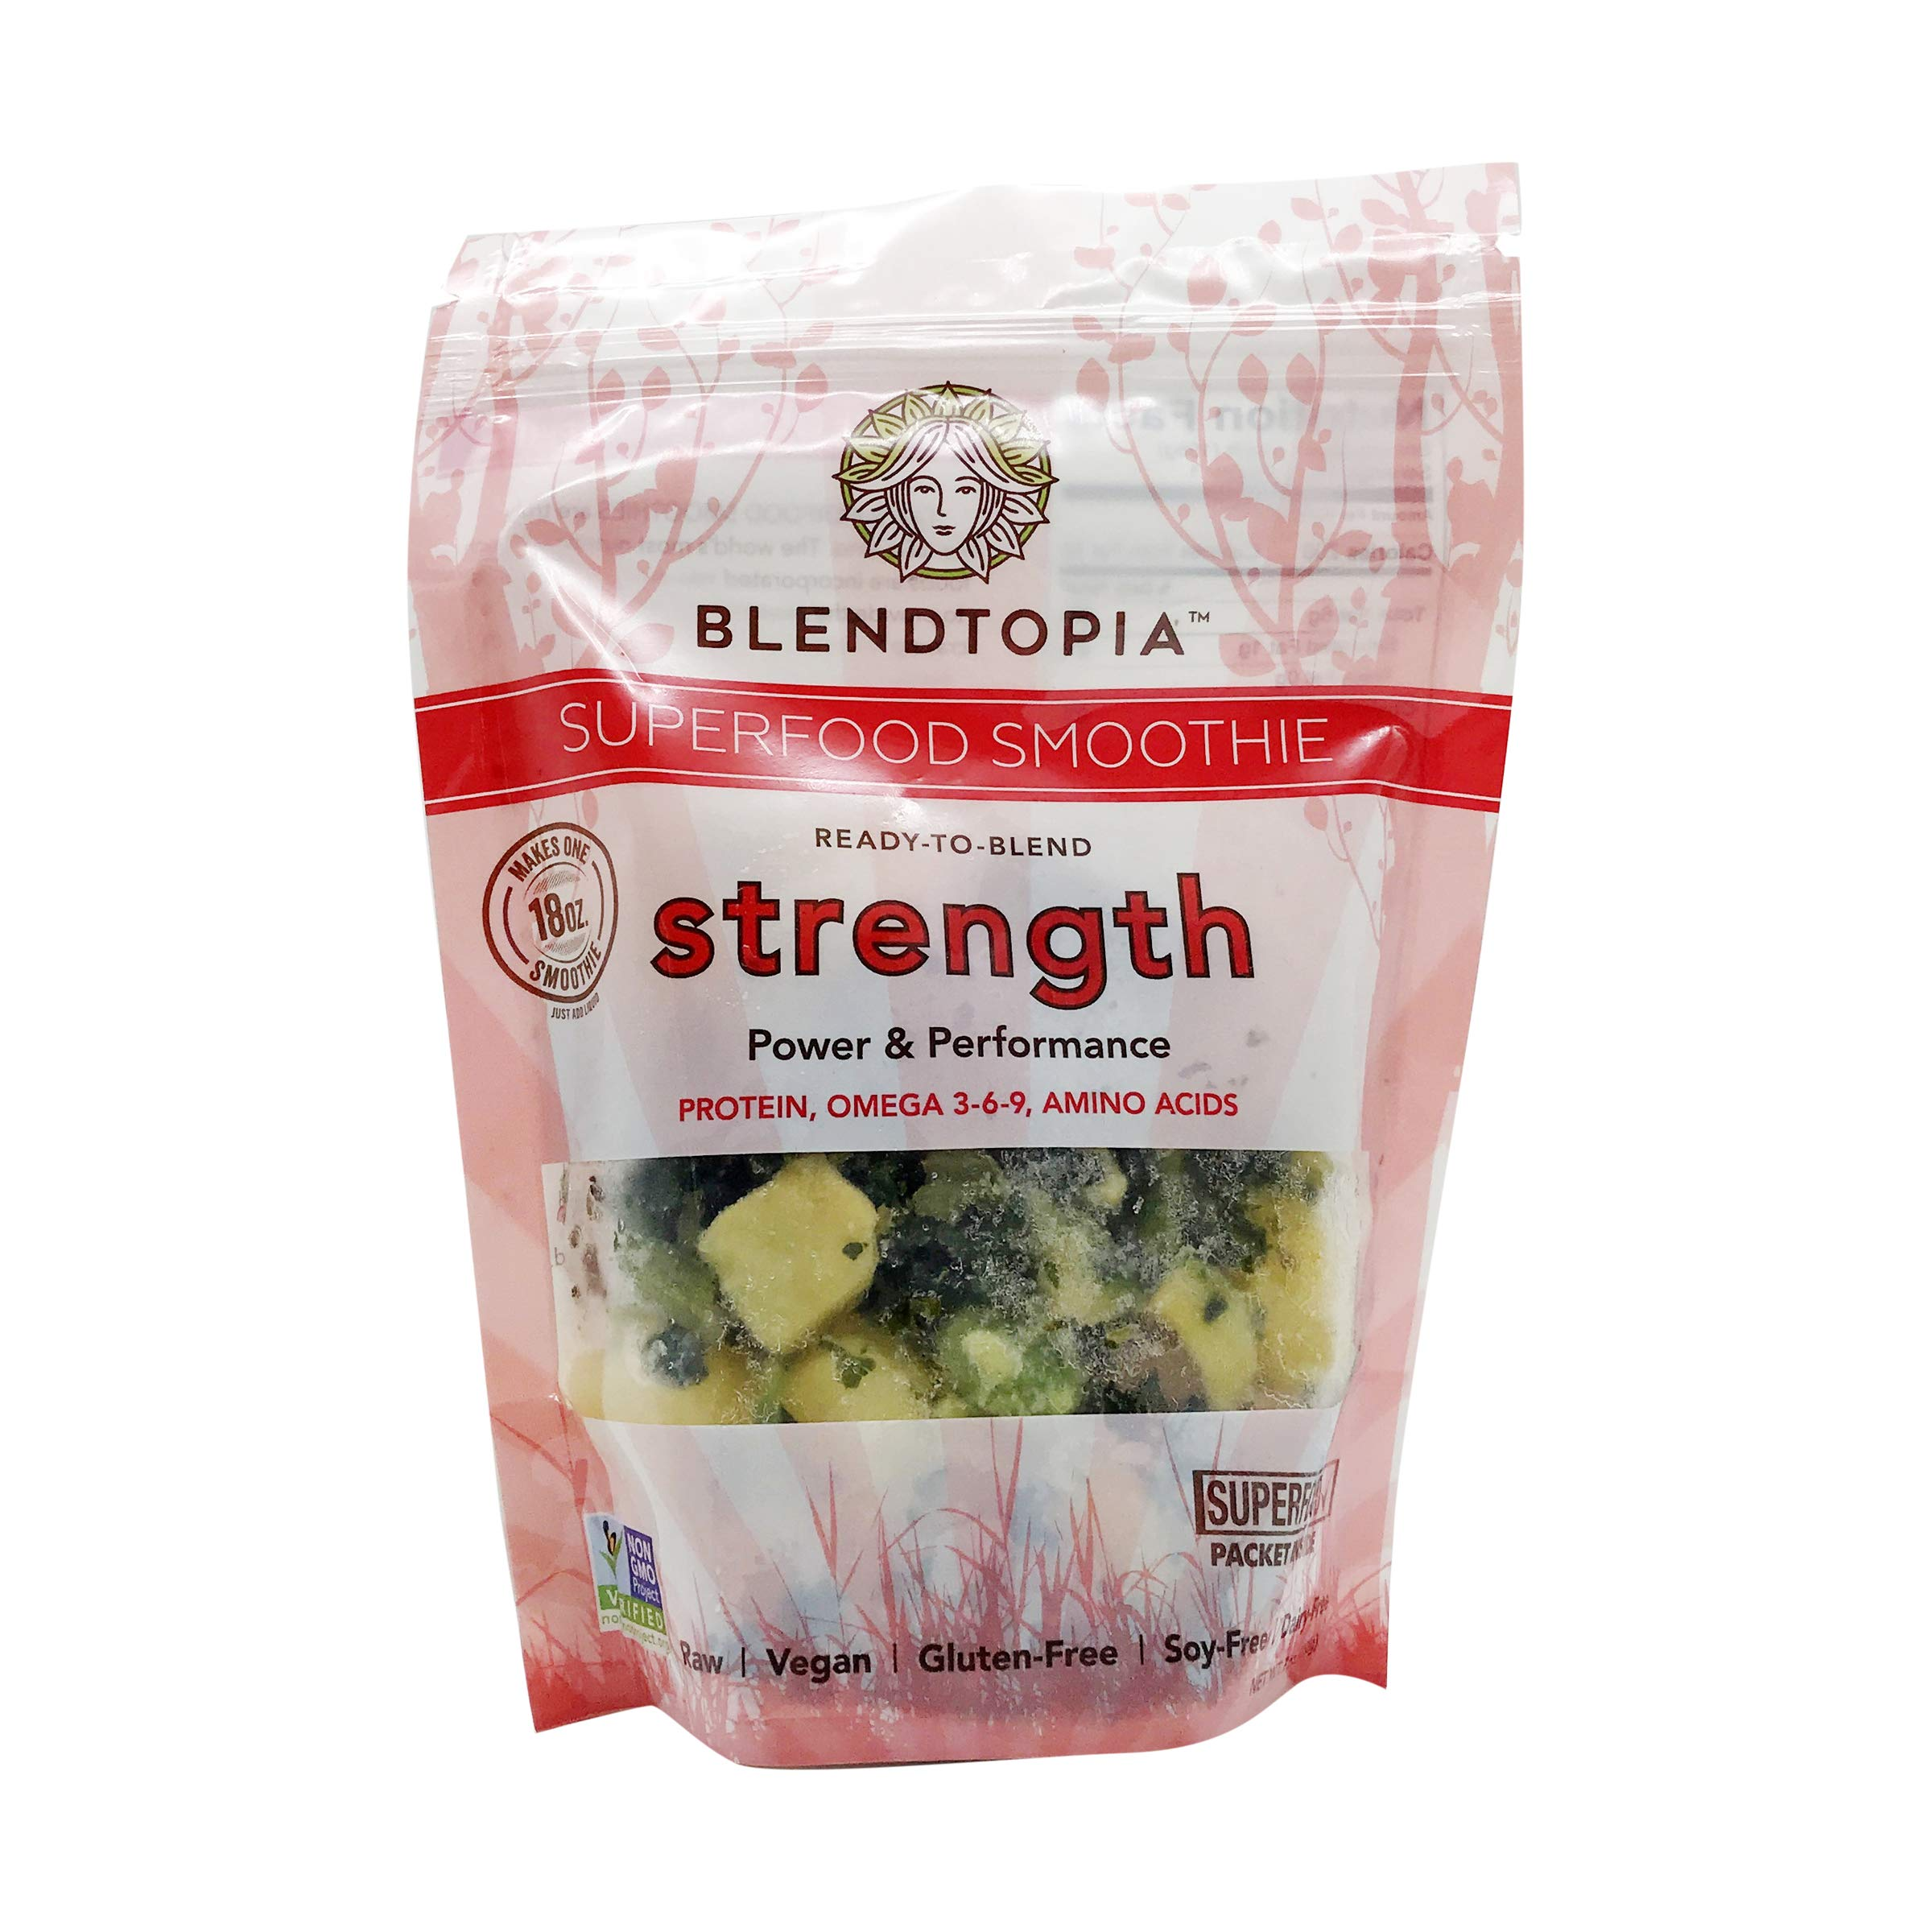 Blendtopia Superfood Smoothie Mix, Strength (4 Pack) by Blendtopia (Image #1)